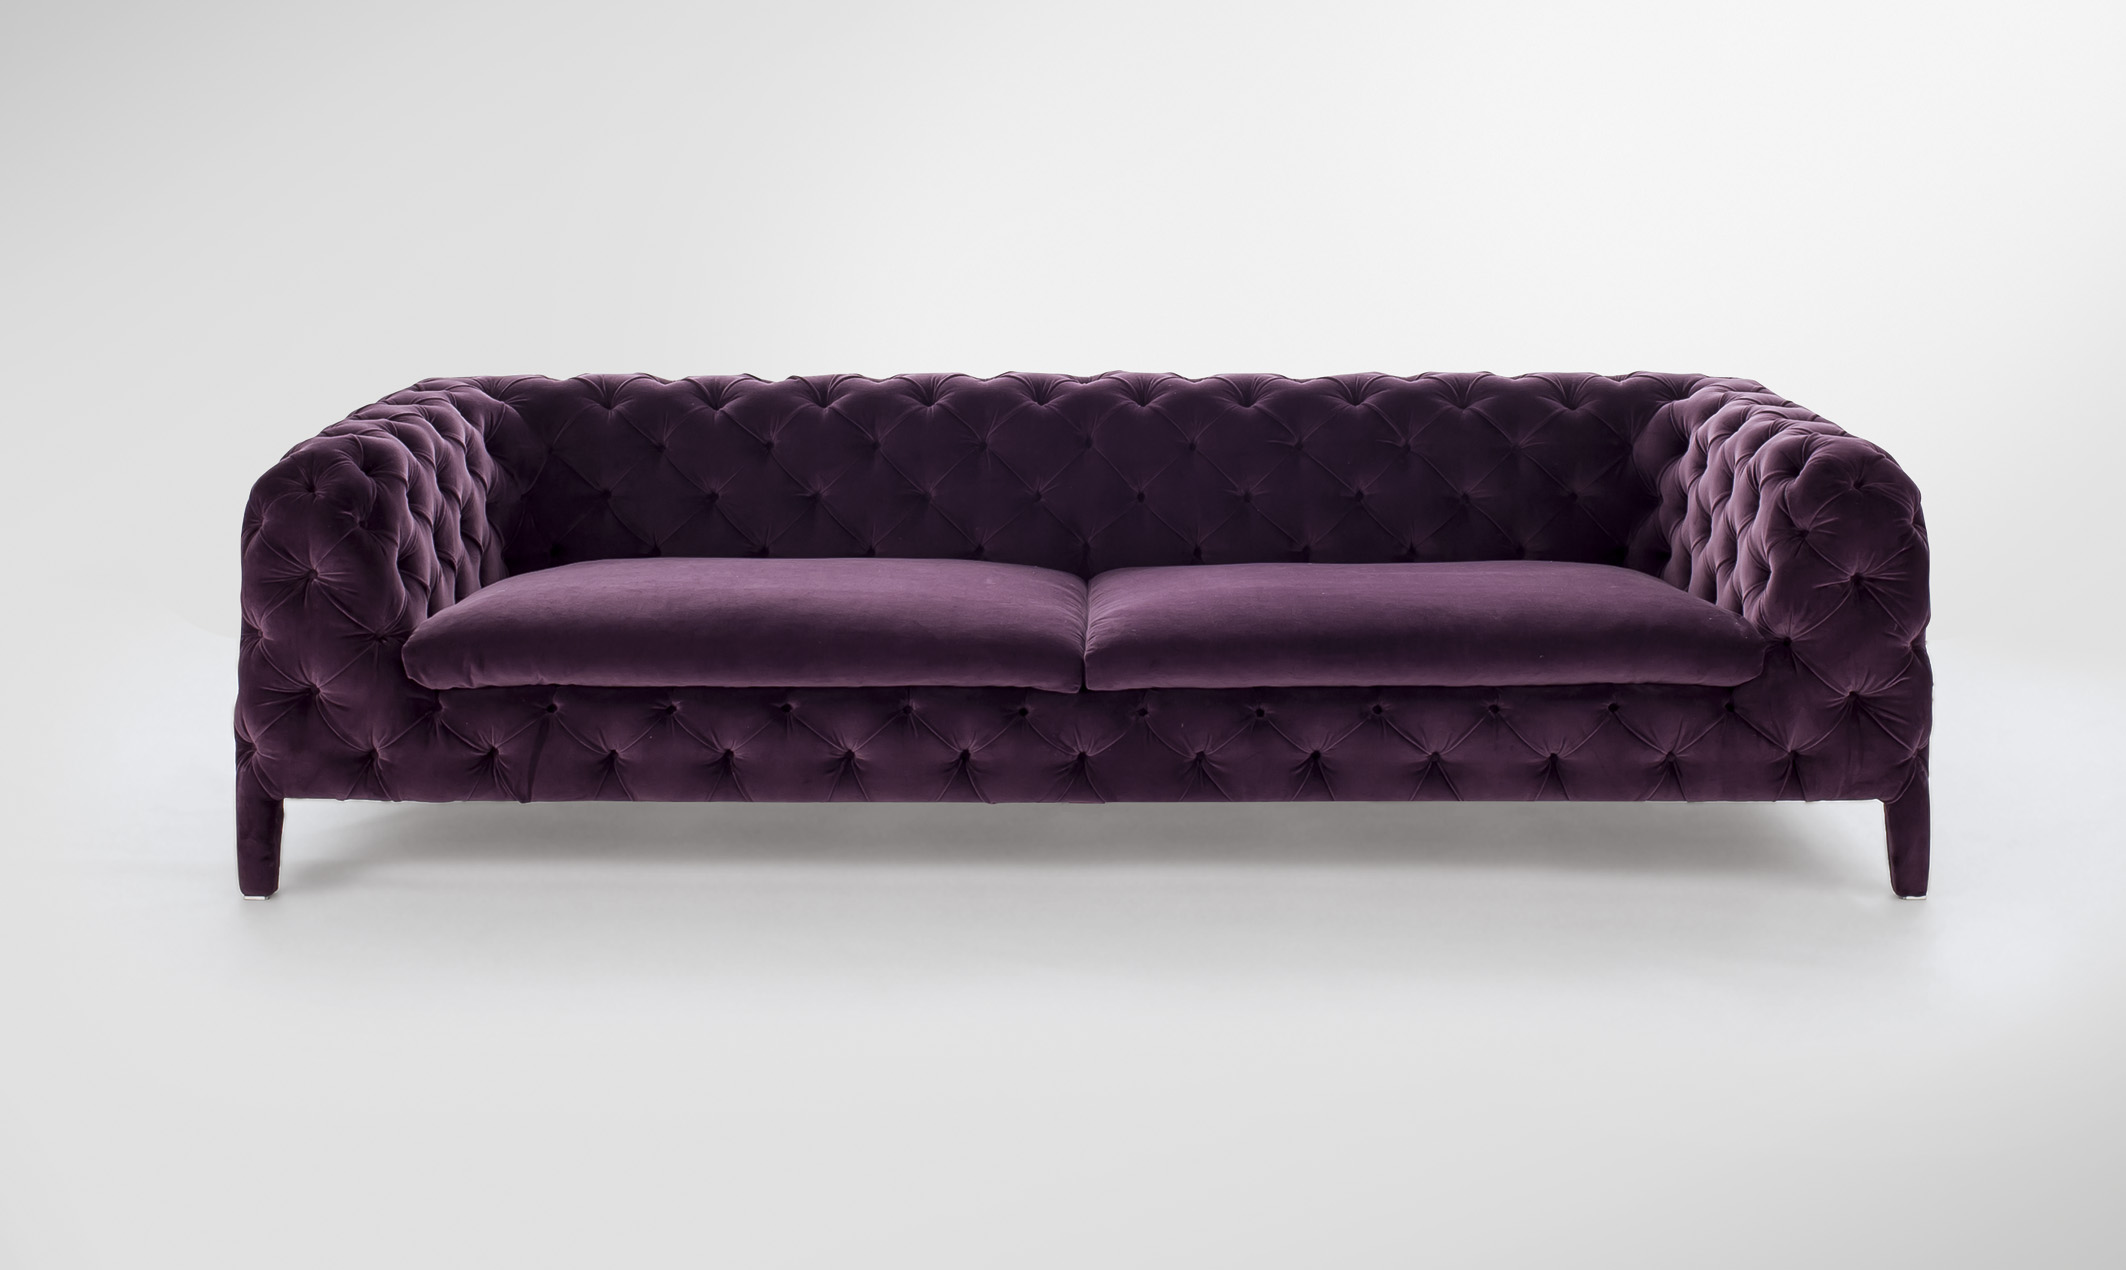 Extra large WIndosr sofa crafted by hand